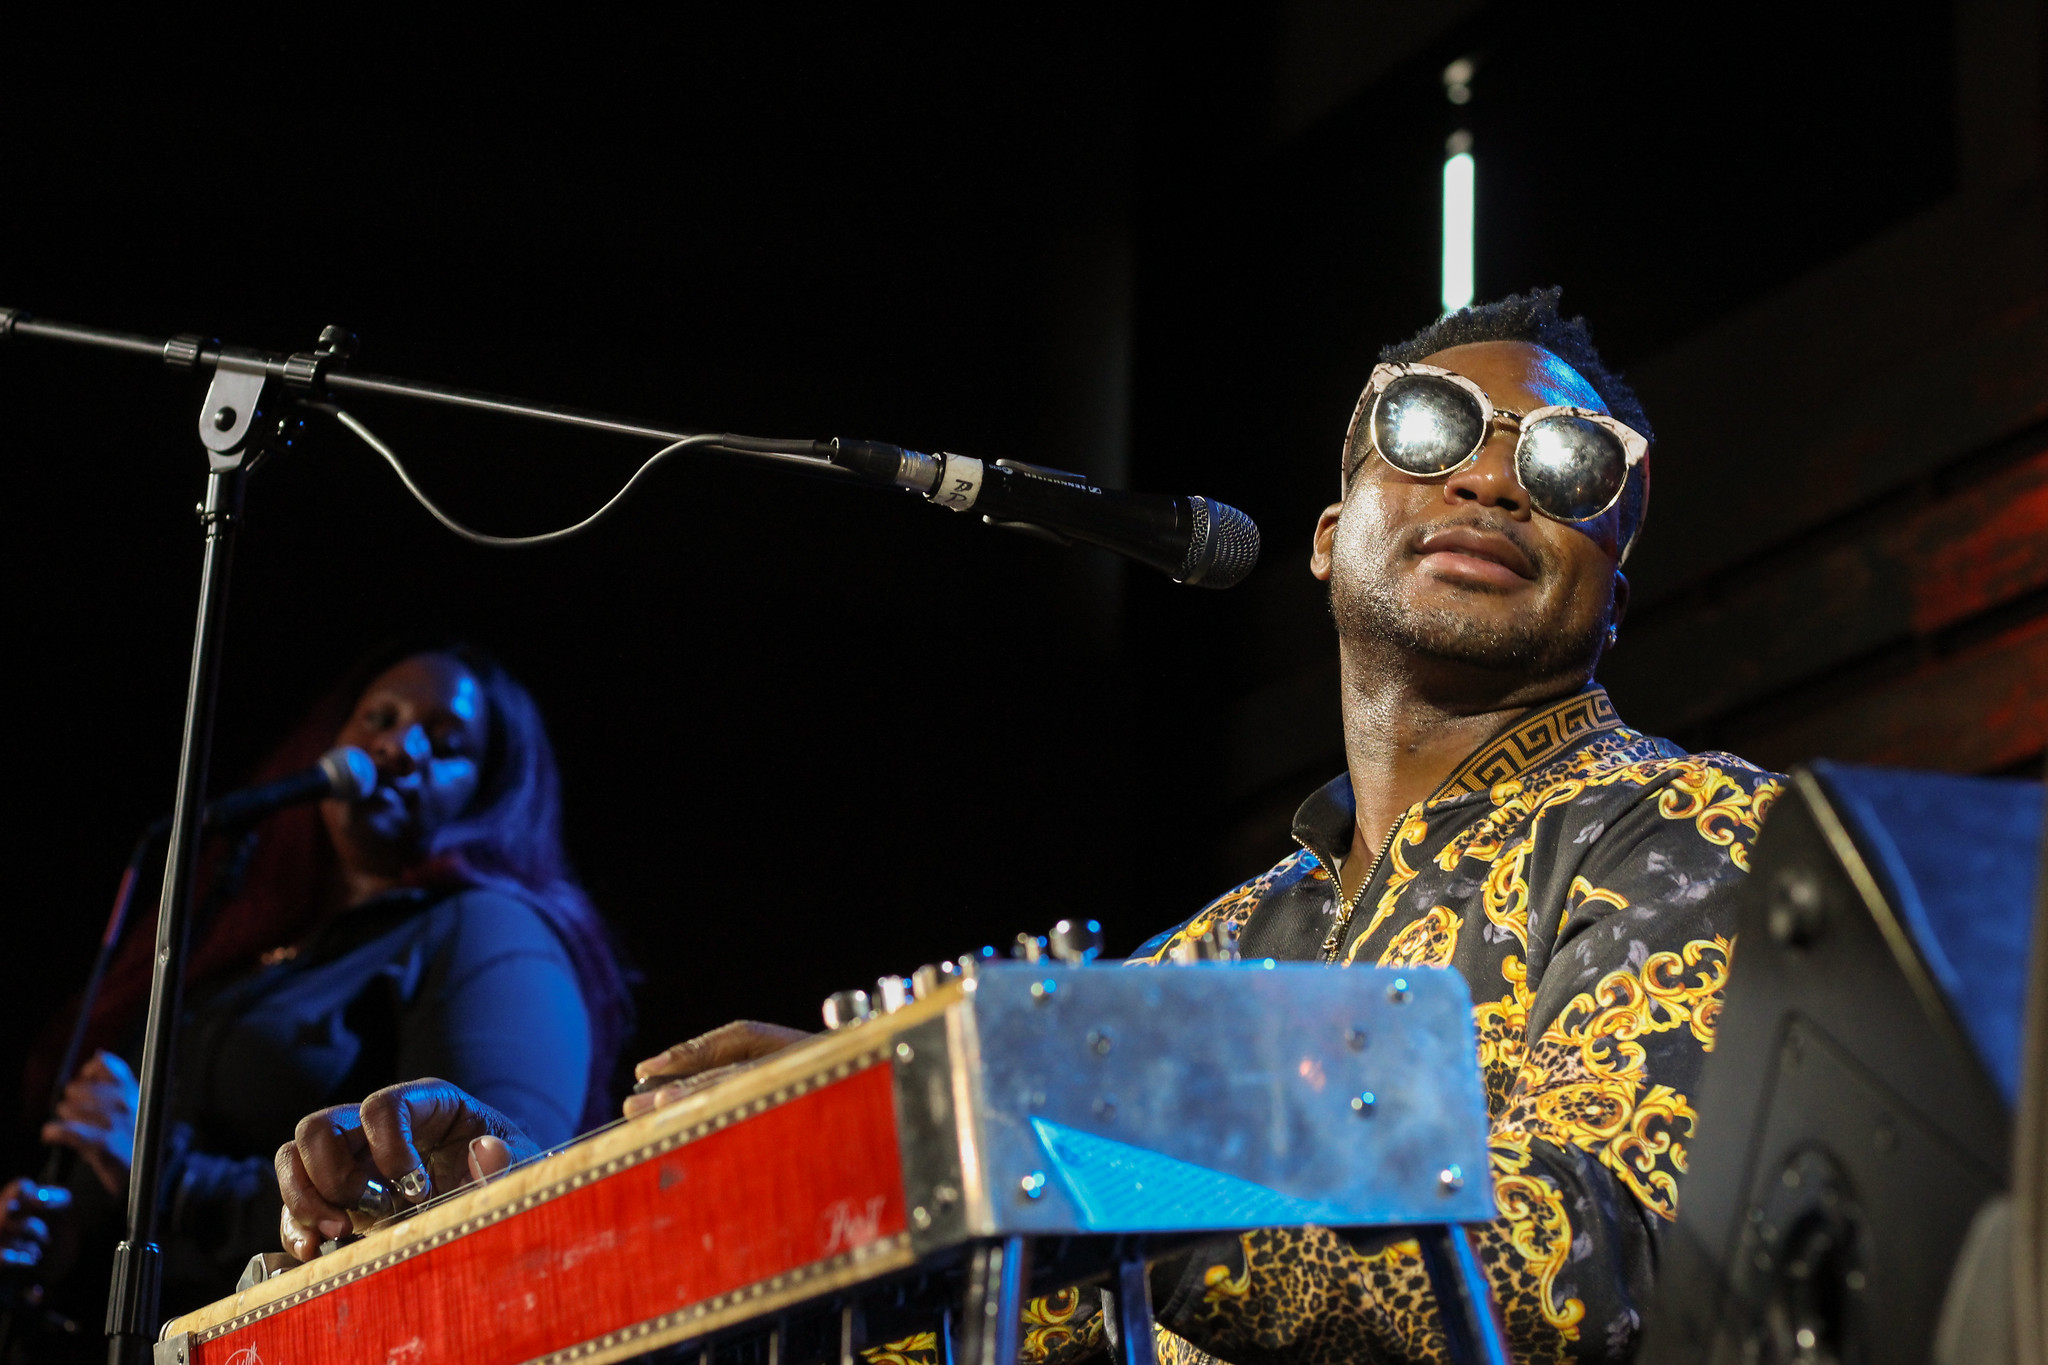 Robert Randolph's Unityfest Amps Up the Party and Importance of Juneteenth